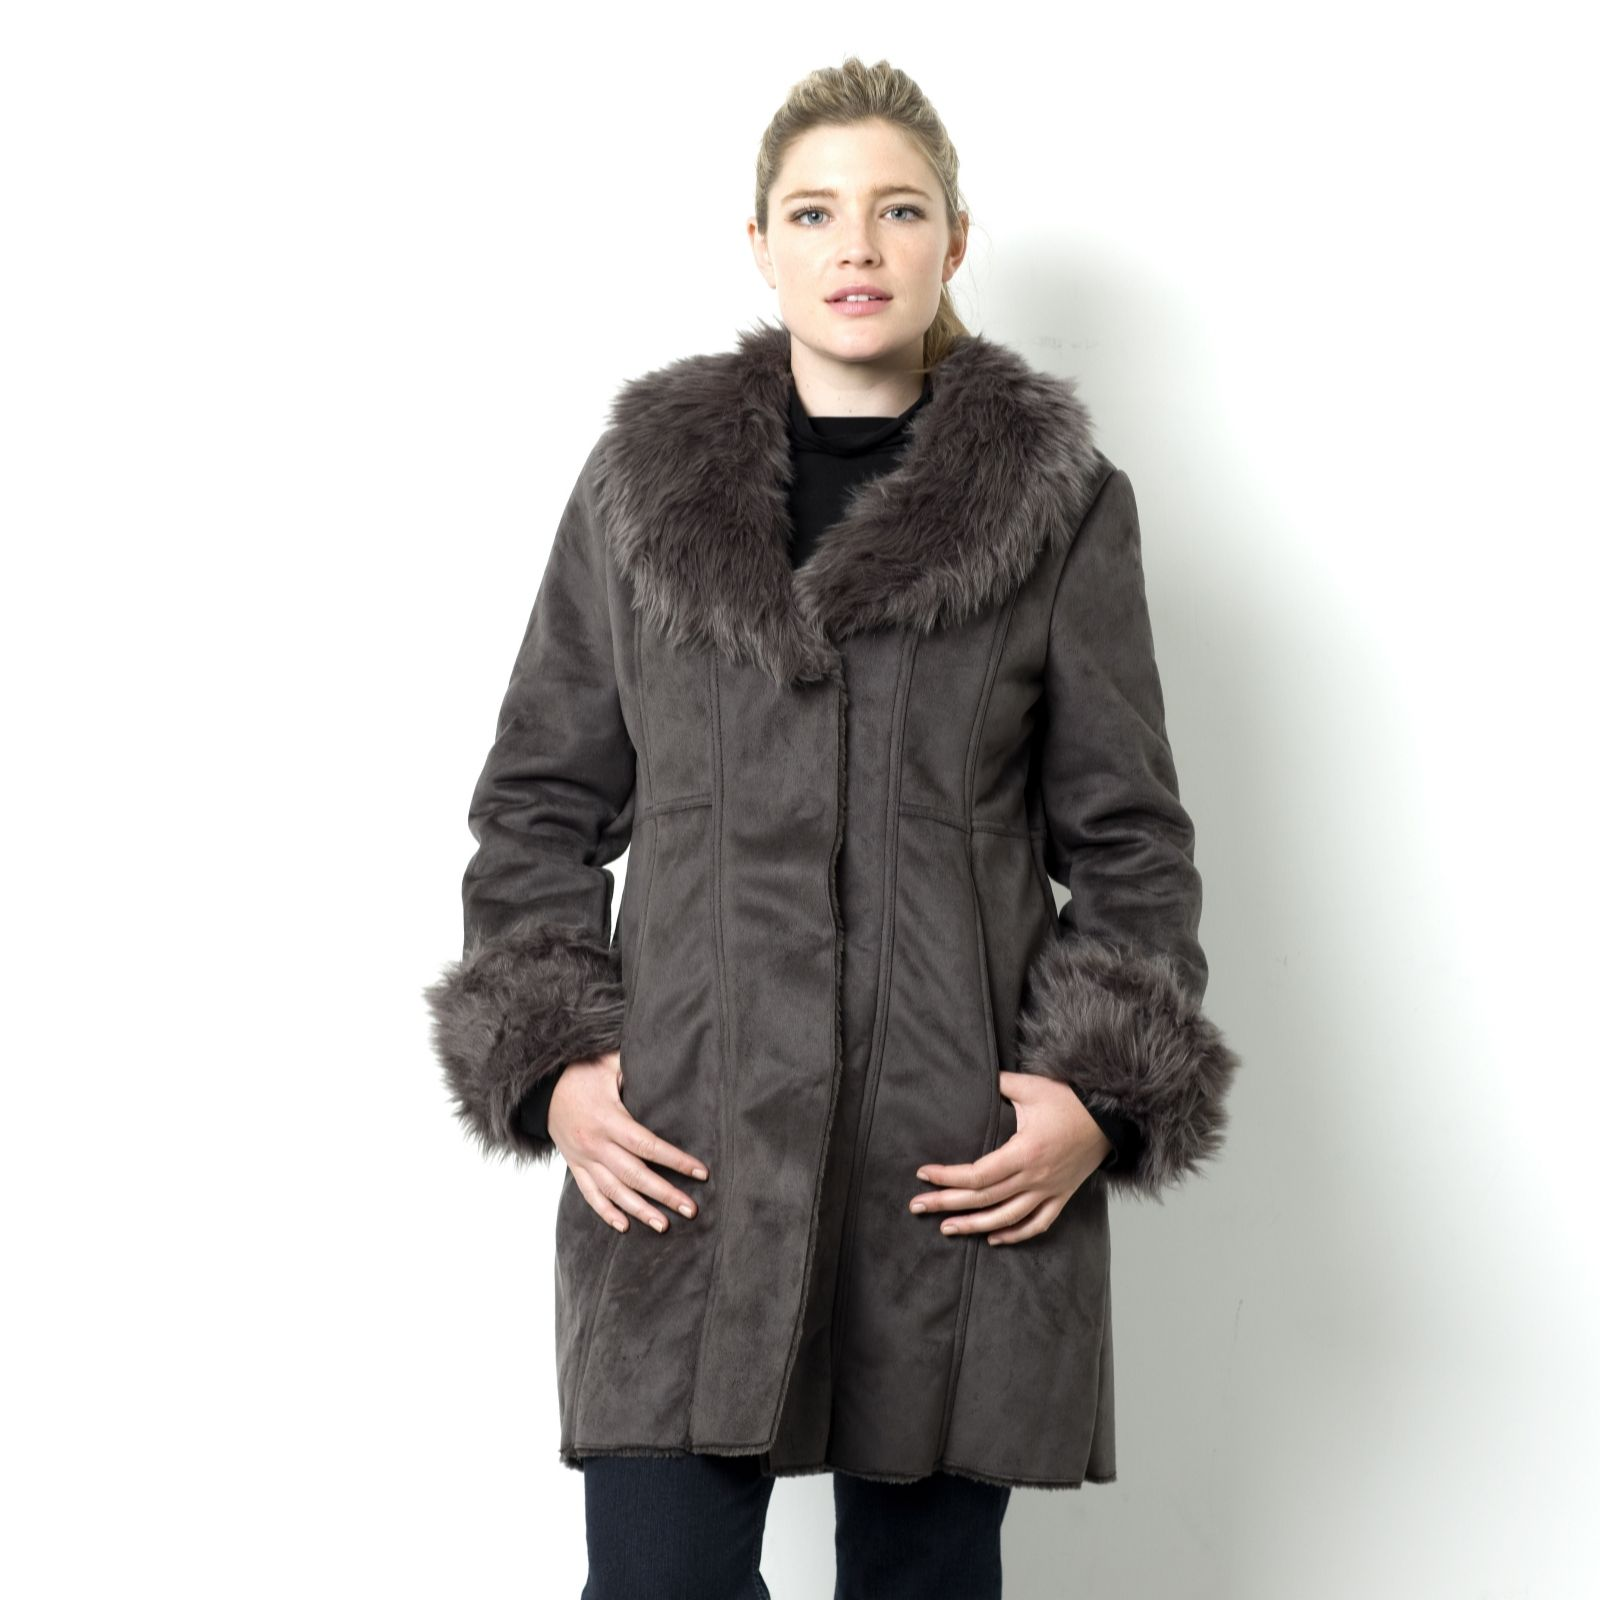 e52a3a426f3 Centigrade Machine Washable Faux Shearling Coat with Faux Fur Collar - Page  1 - QVC UK